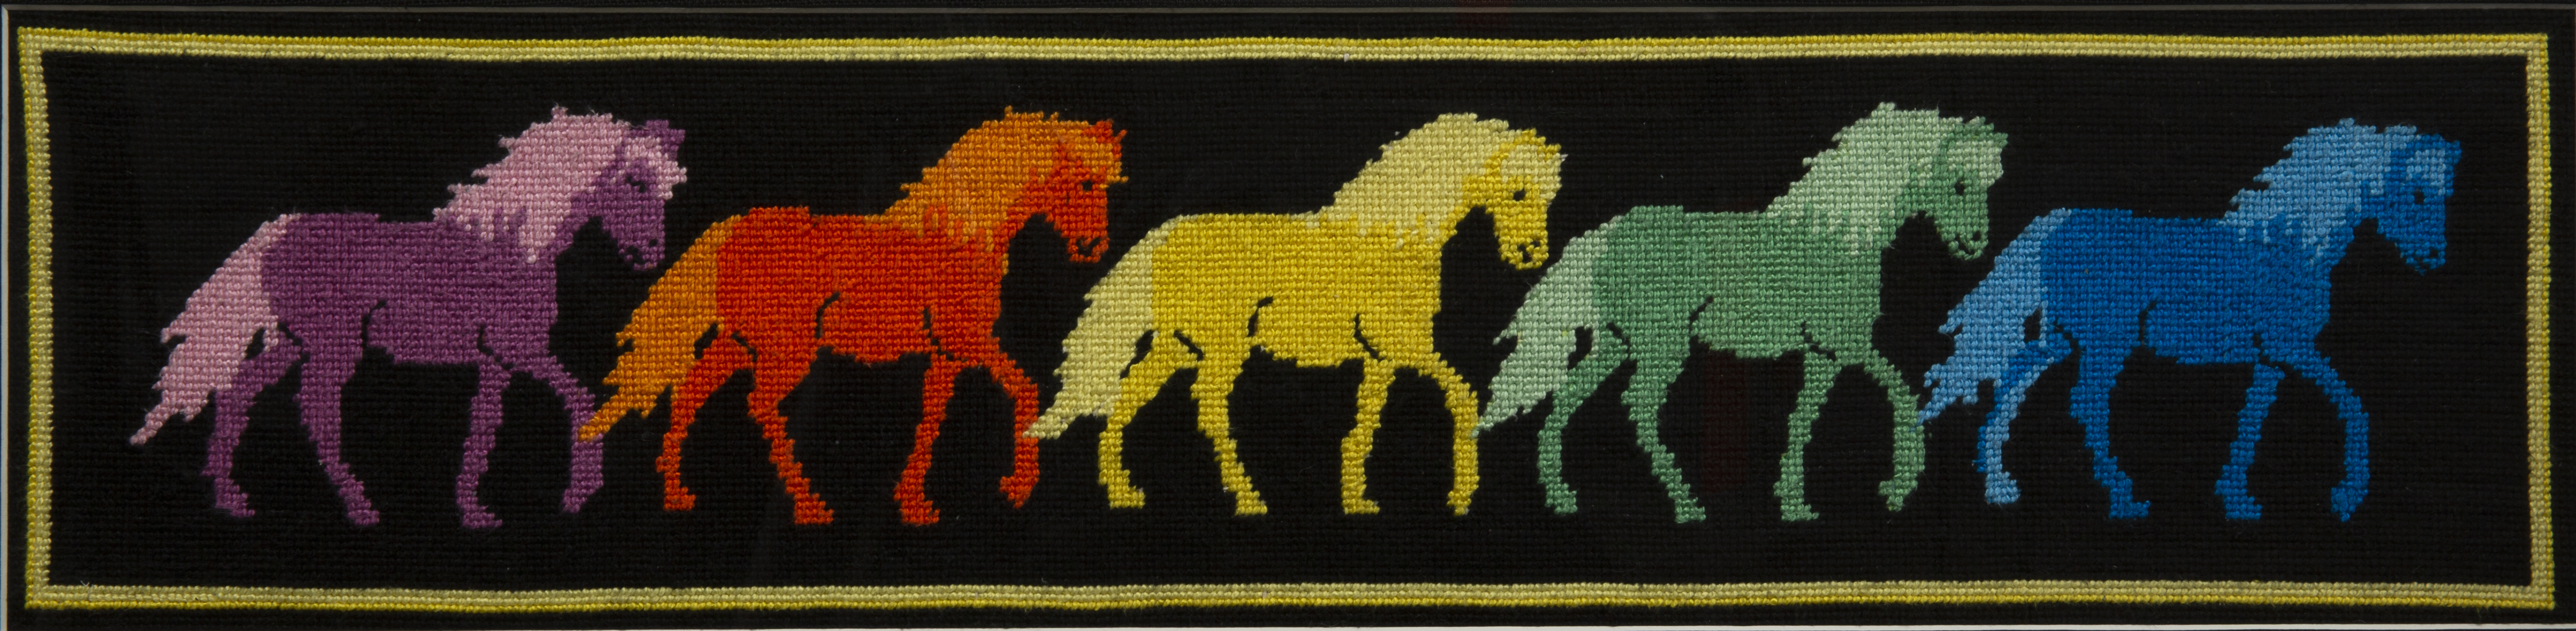 Needlework - Horses of a Different Color - needlework of 5 horses all of a different color; purple, orange, yellow, green and blue.